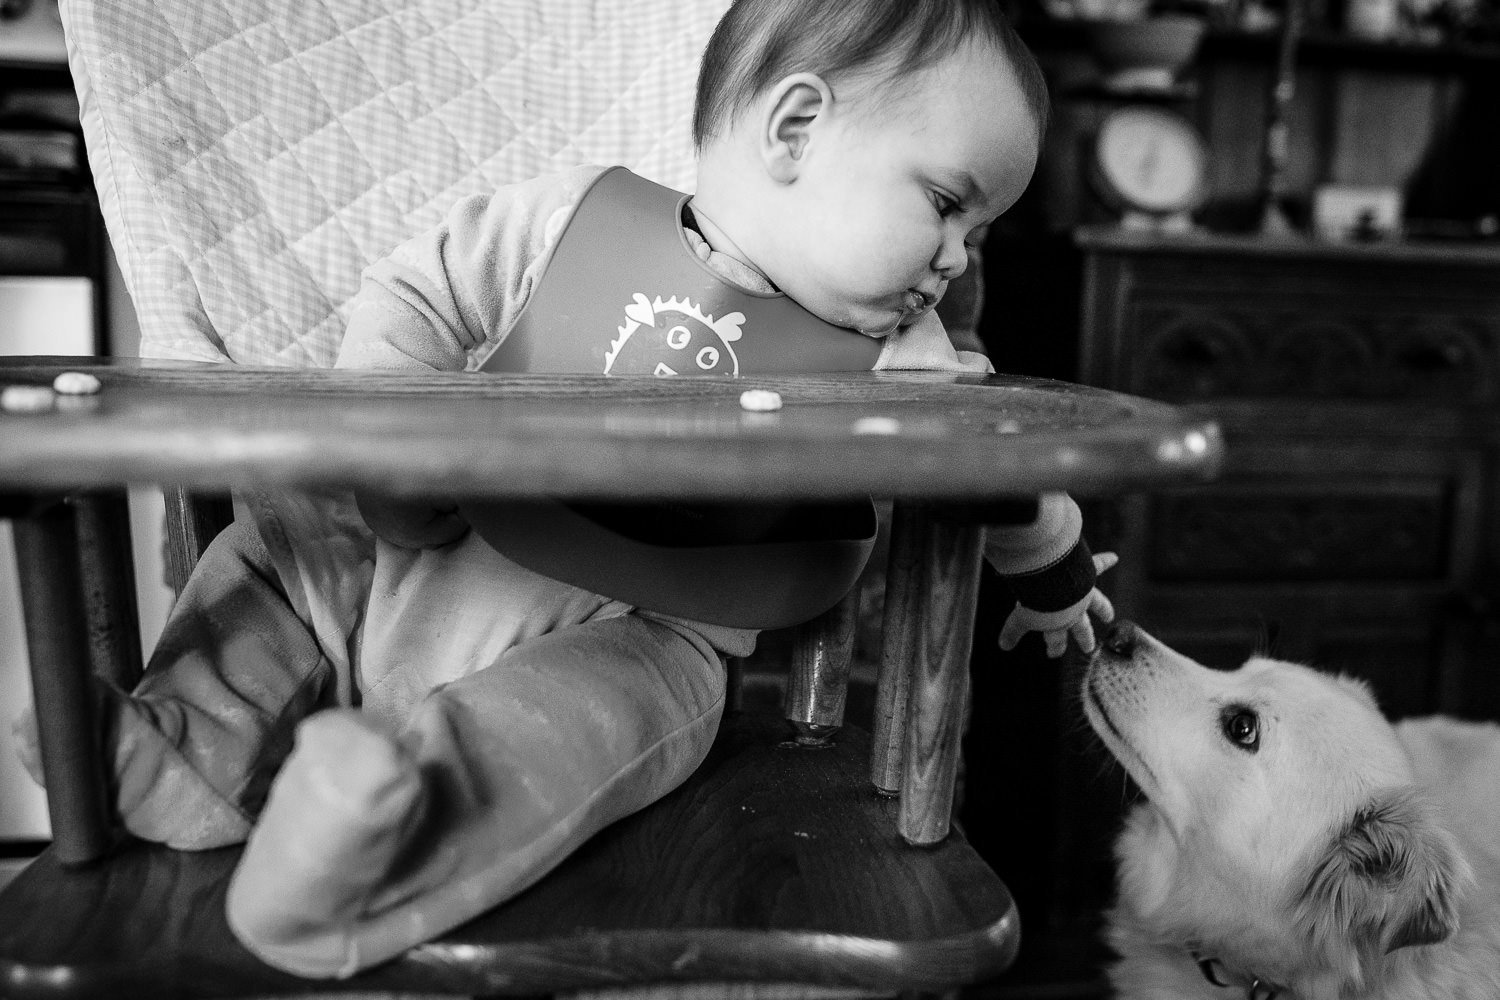 A baby in a high chair leans over to feed dog during day in the life family photography session in east greenwich rhode island